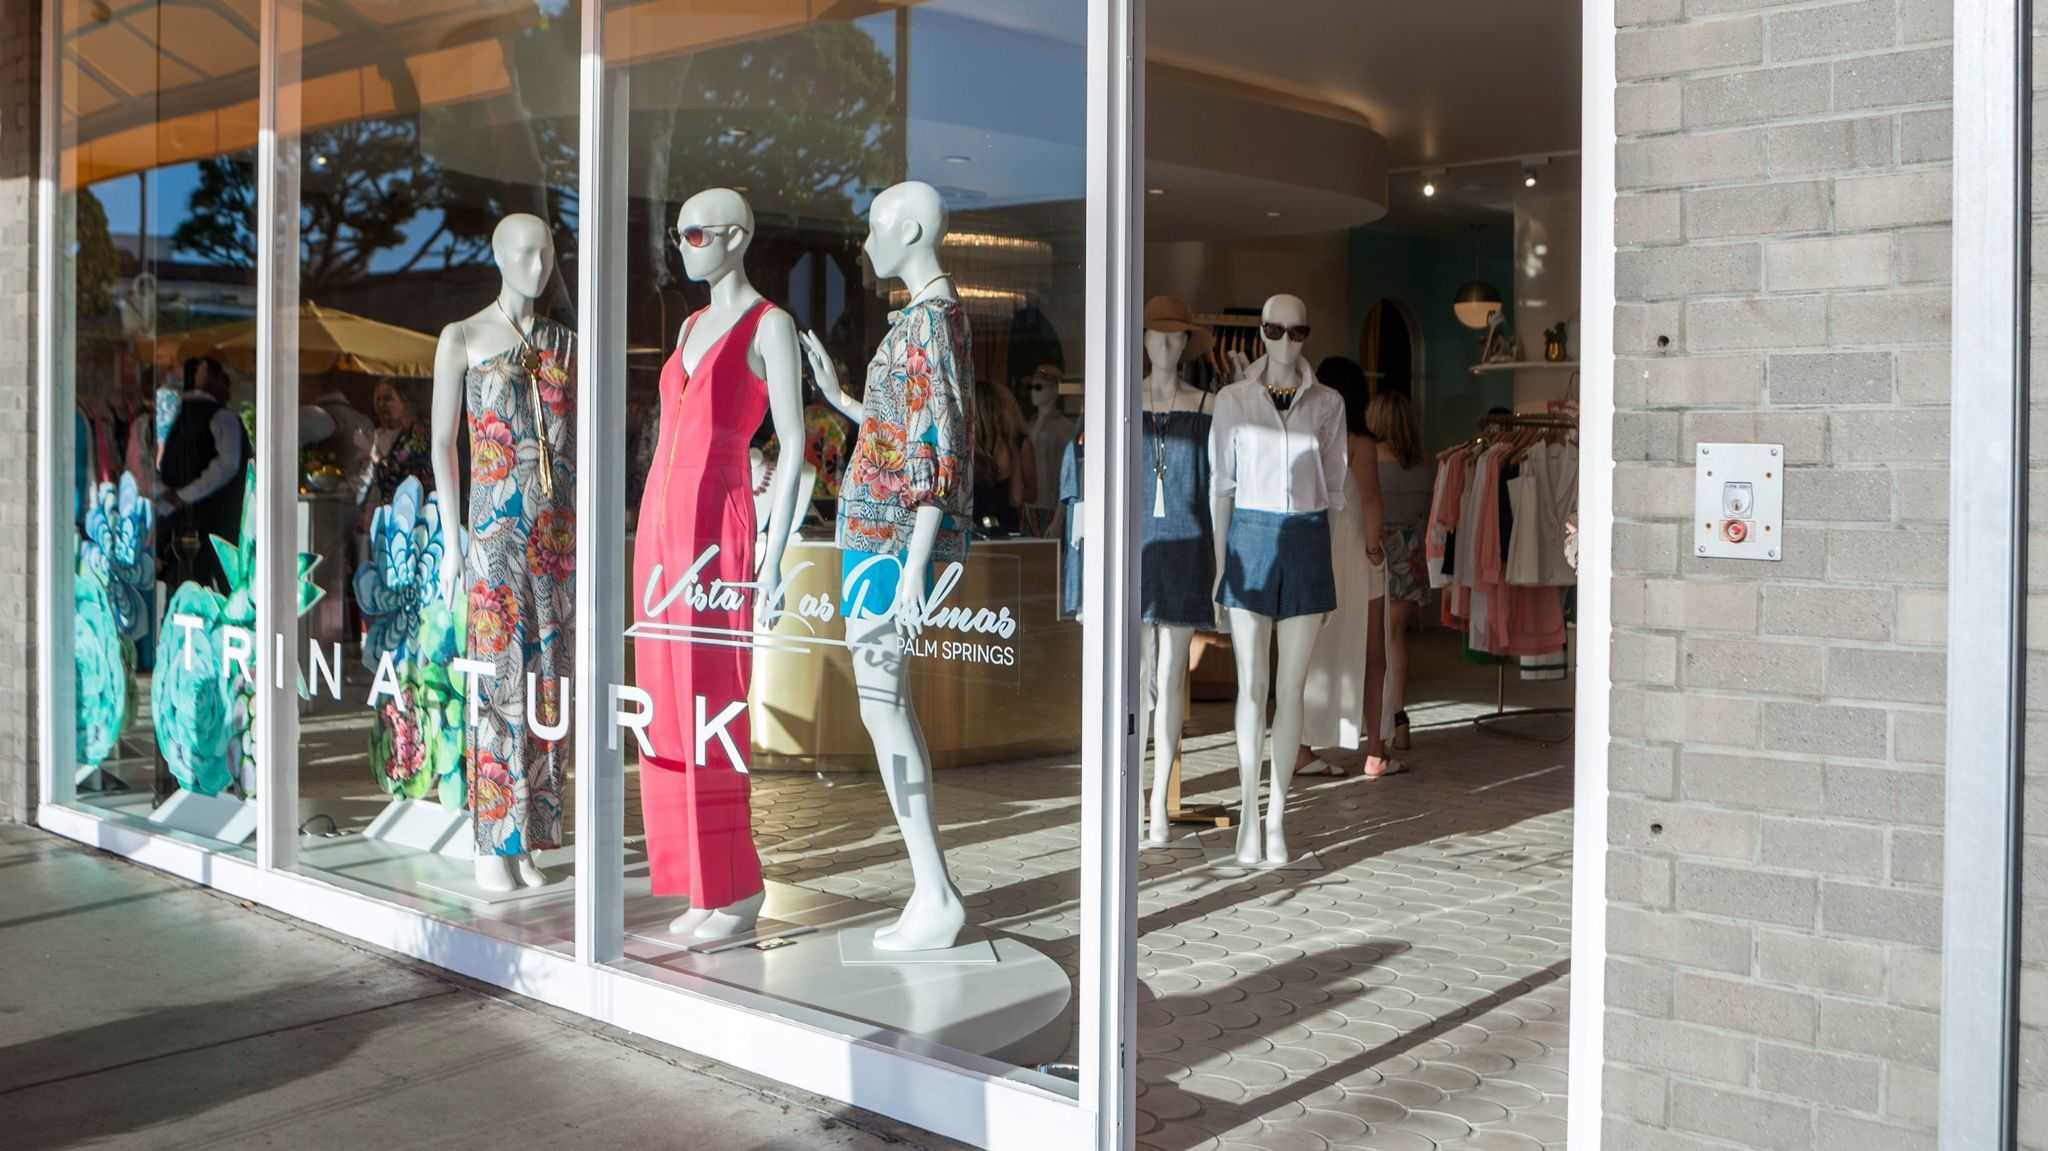 A look at the new Trina Turk store in Larchmont Village. The space is also home to Mr Turk men's selections.